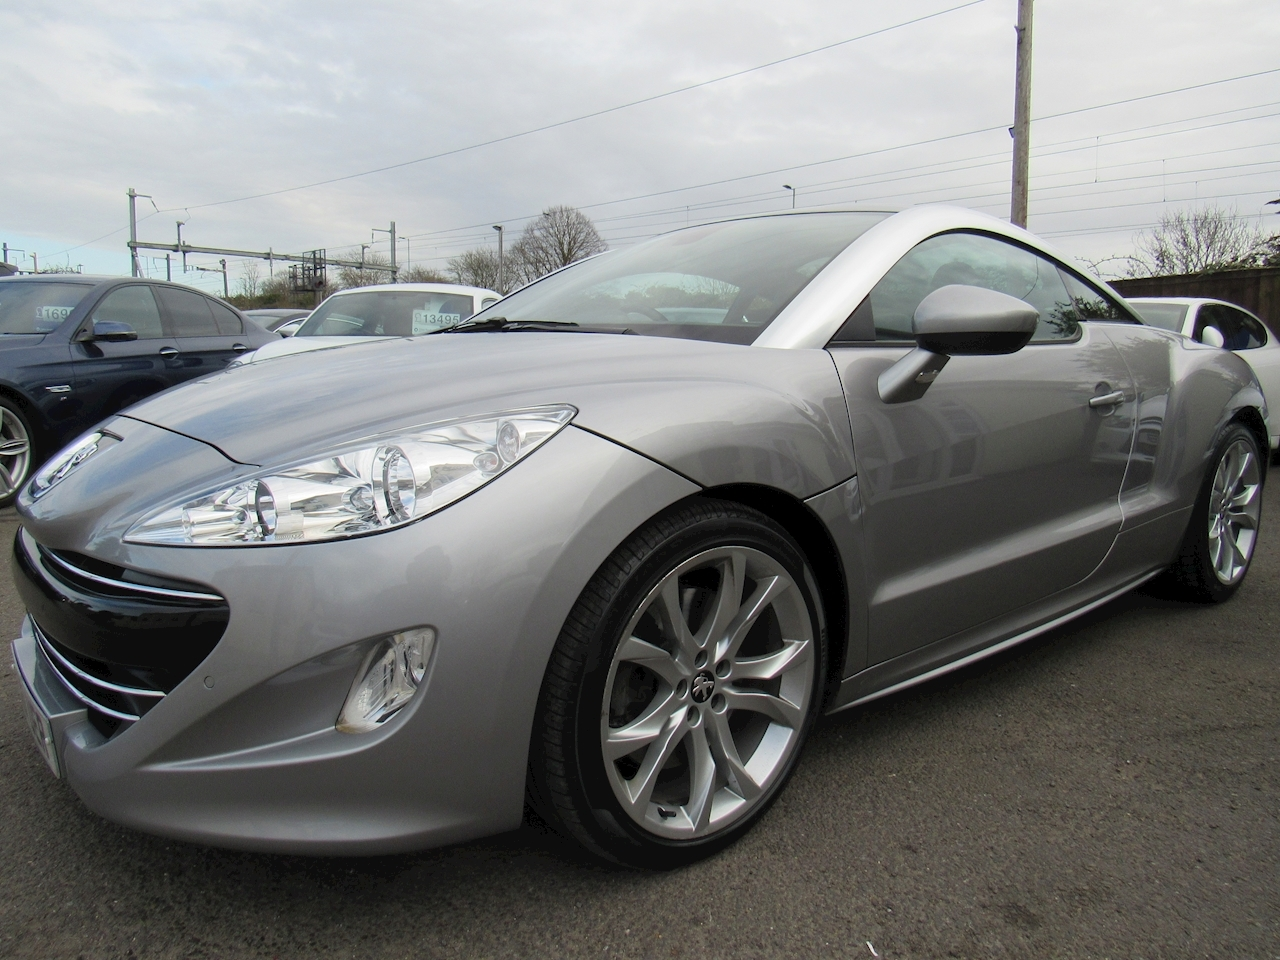 Peugeot Rcz Hdi Gt Coupe 2.0 Manual Diesel